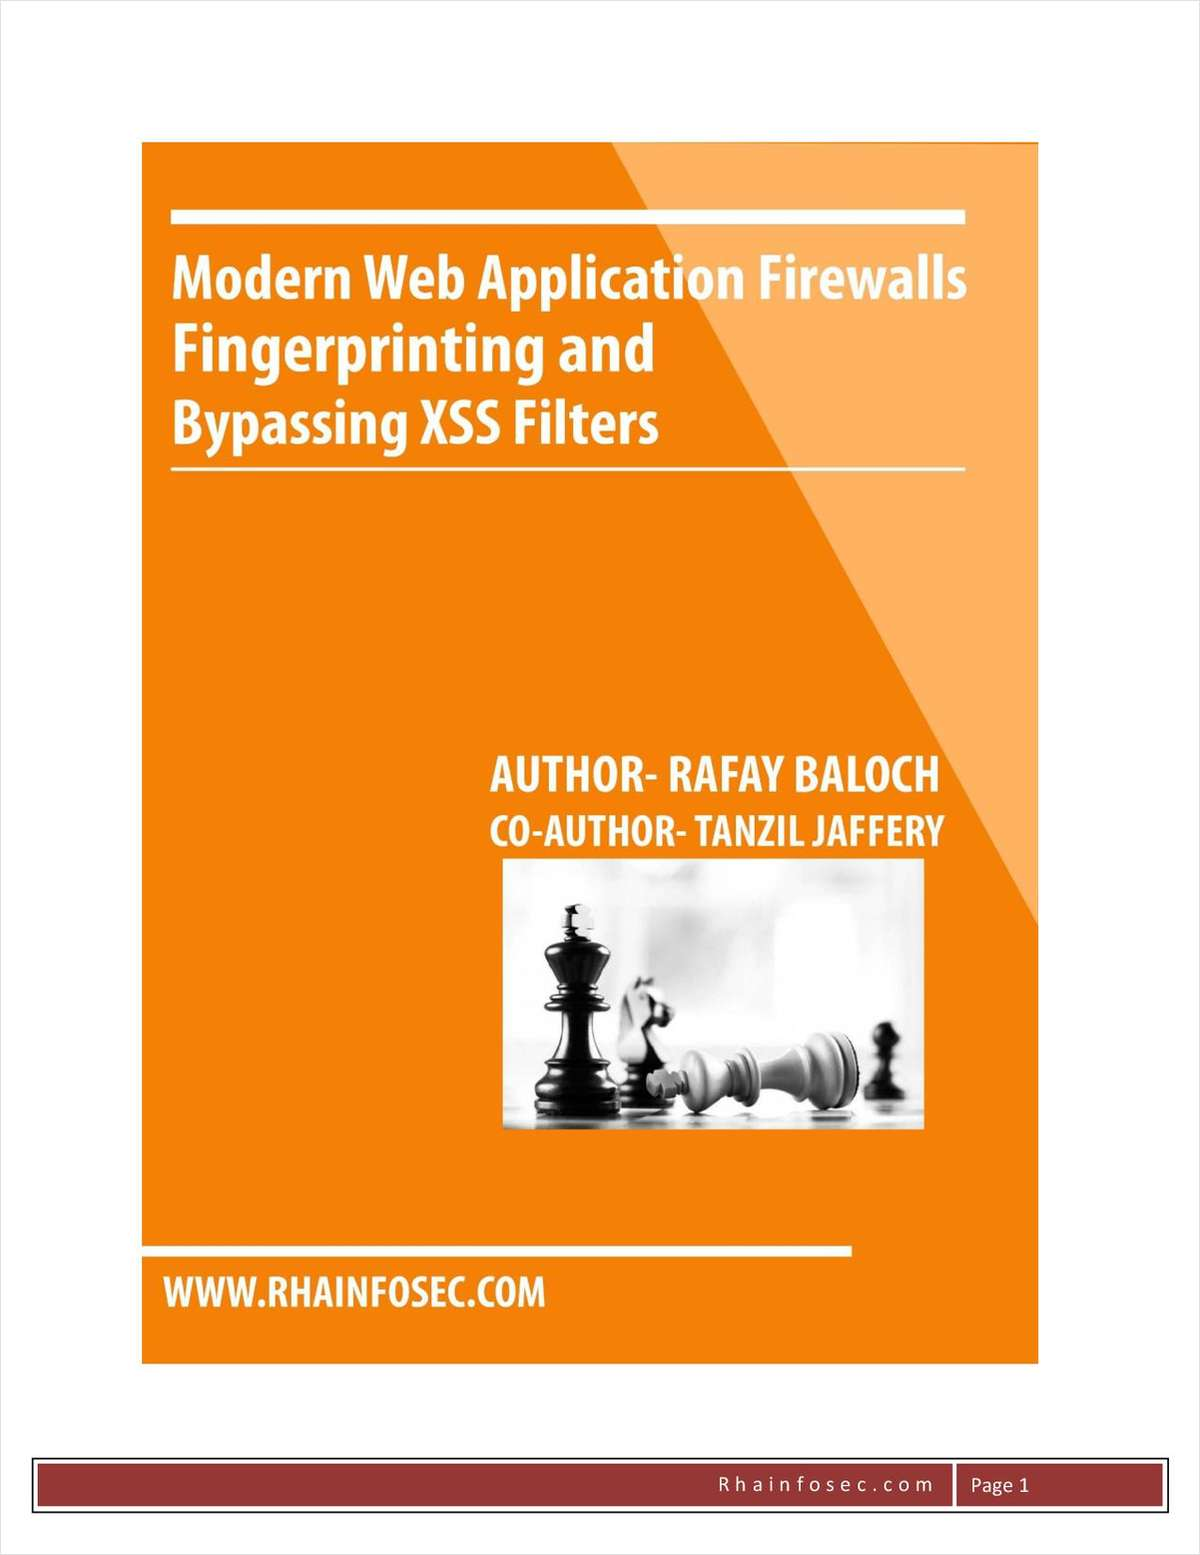 Modern Web Application Firewalls Fingerprinting and Bypassing XSS Filters